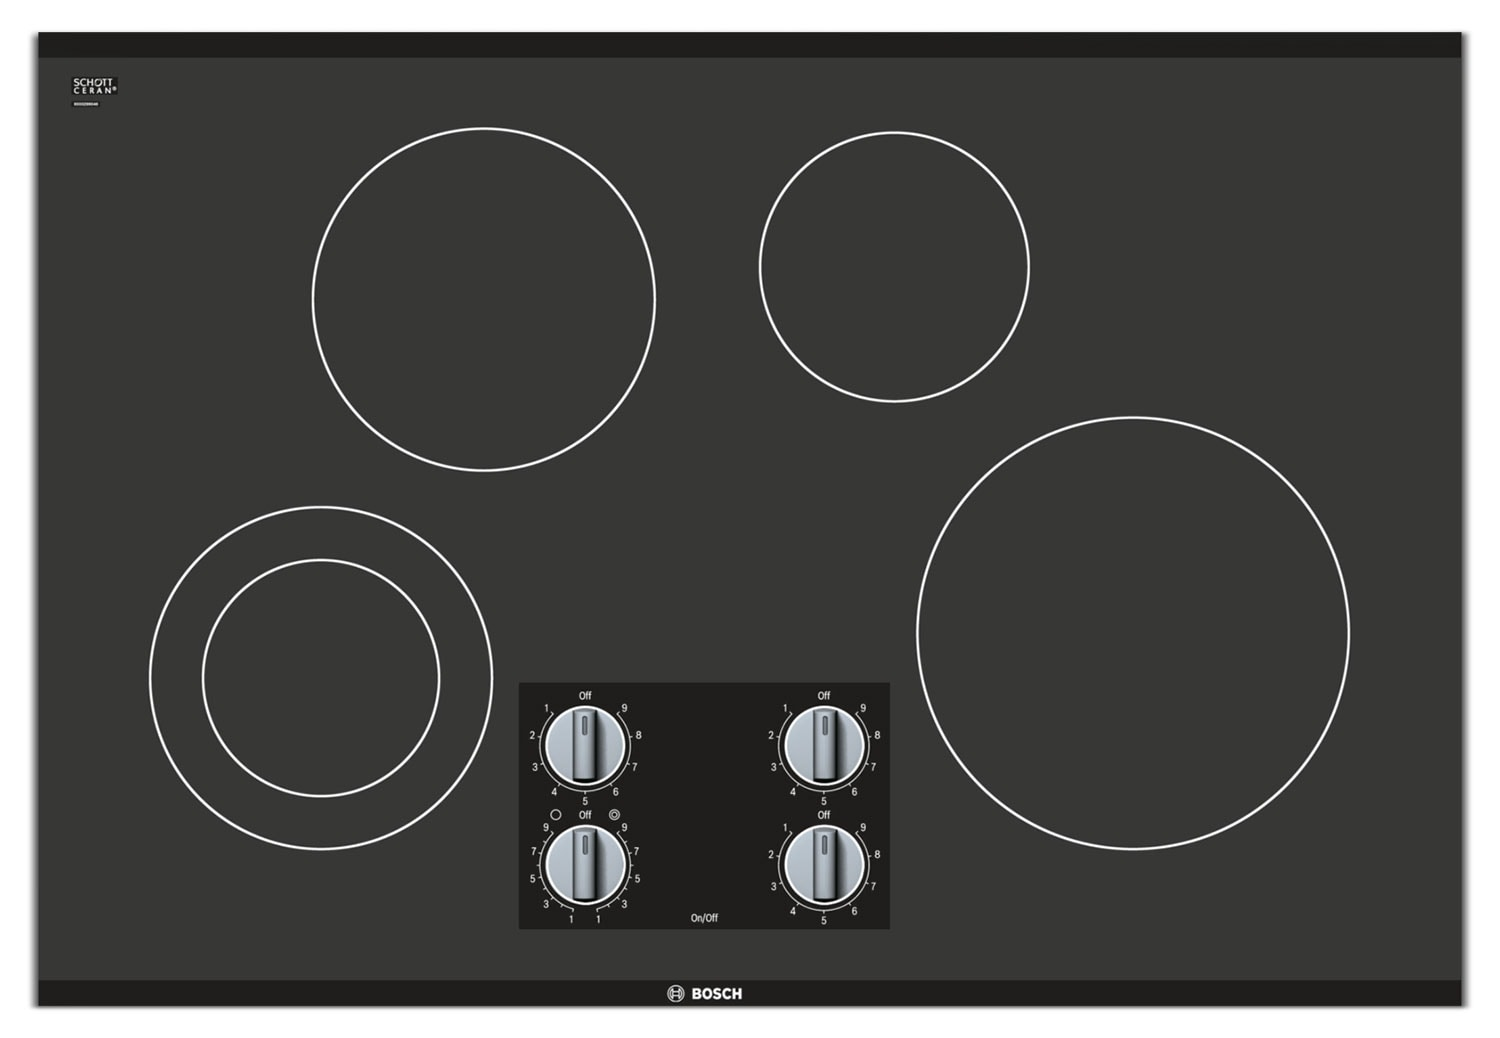 Bosch Black Electric Cooktop - NEM5066UC